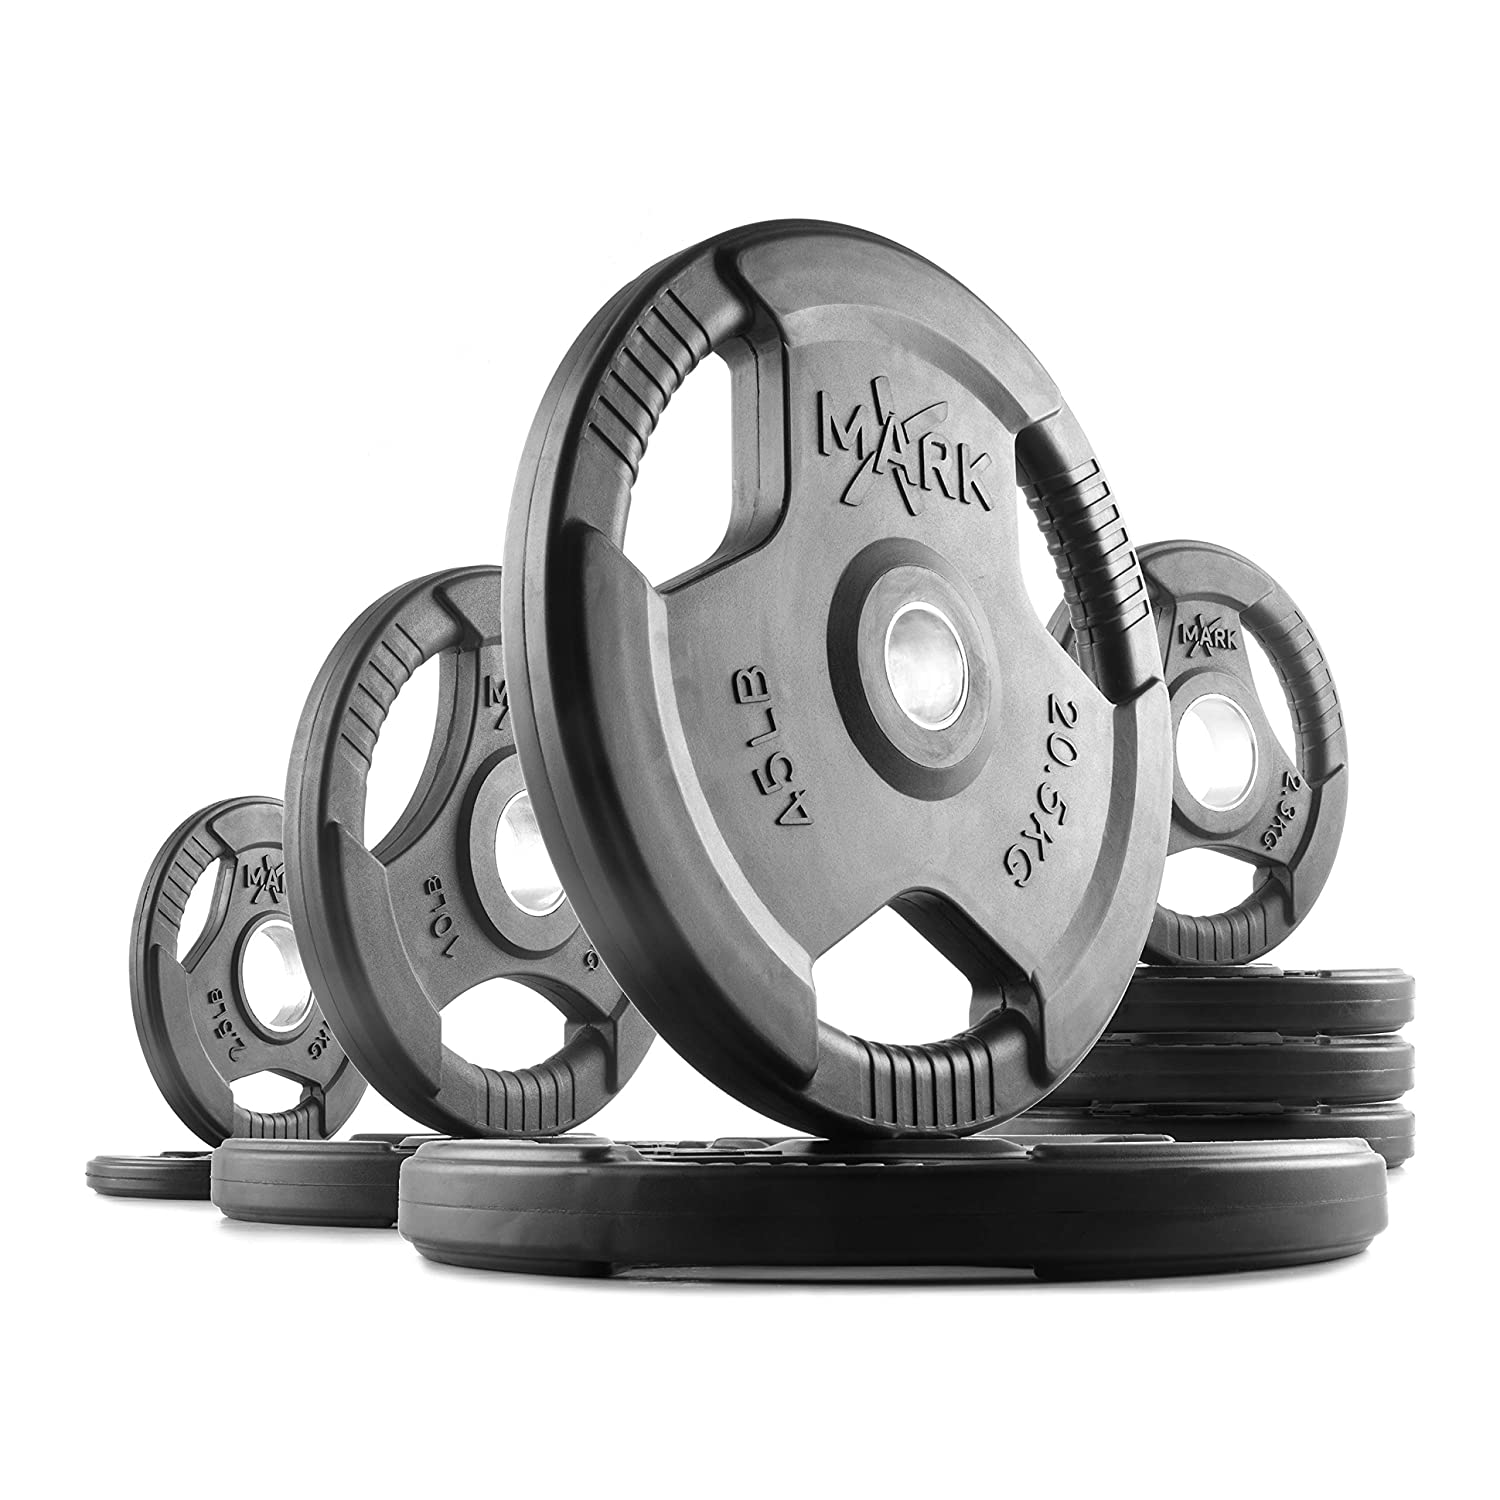 XMark Premium Quality Rubber Coated Tri-grip Olympic Plate Weights 135 lb. Set: Amazon.co.uk: Sports & Outdoors